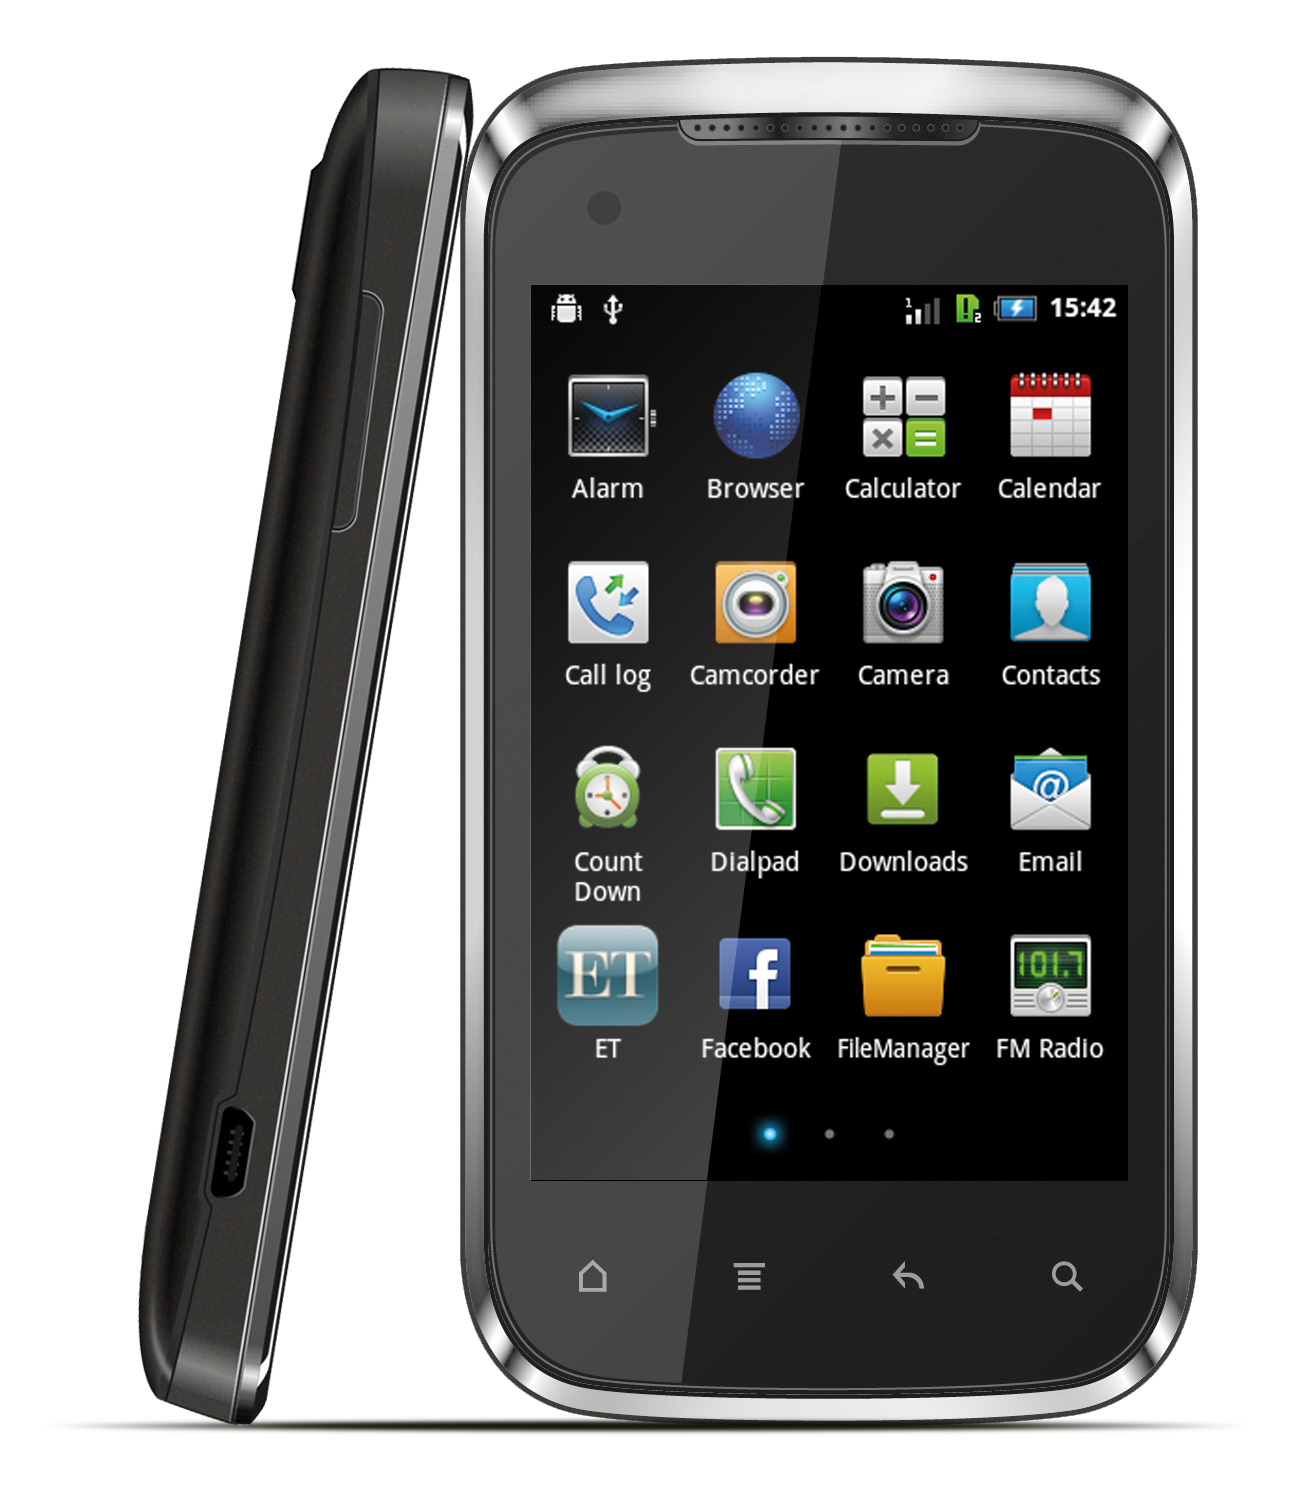 Videocon Mobile Phones Launches A20 and A30 Android Smartphones